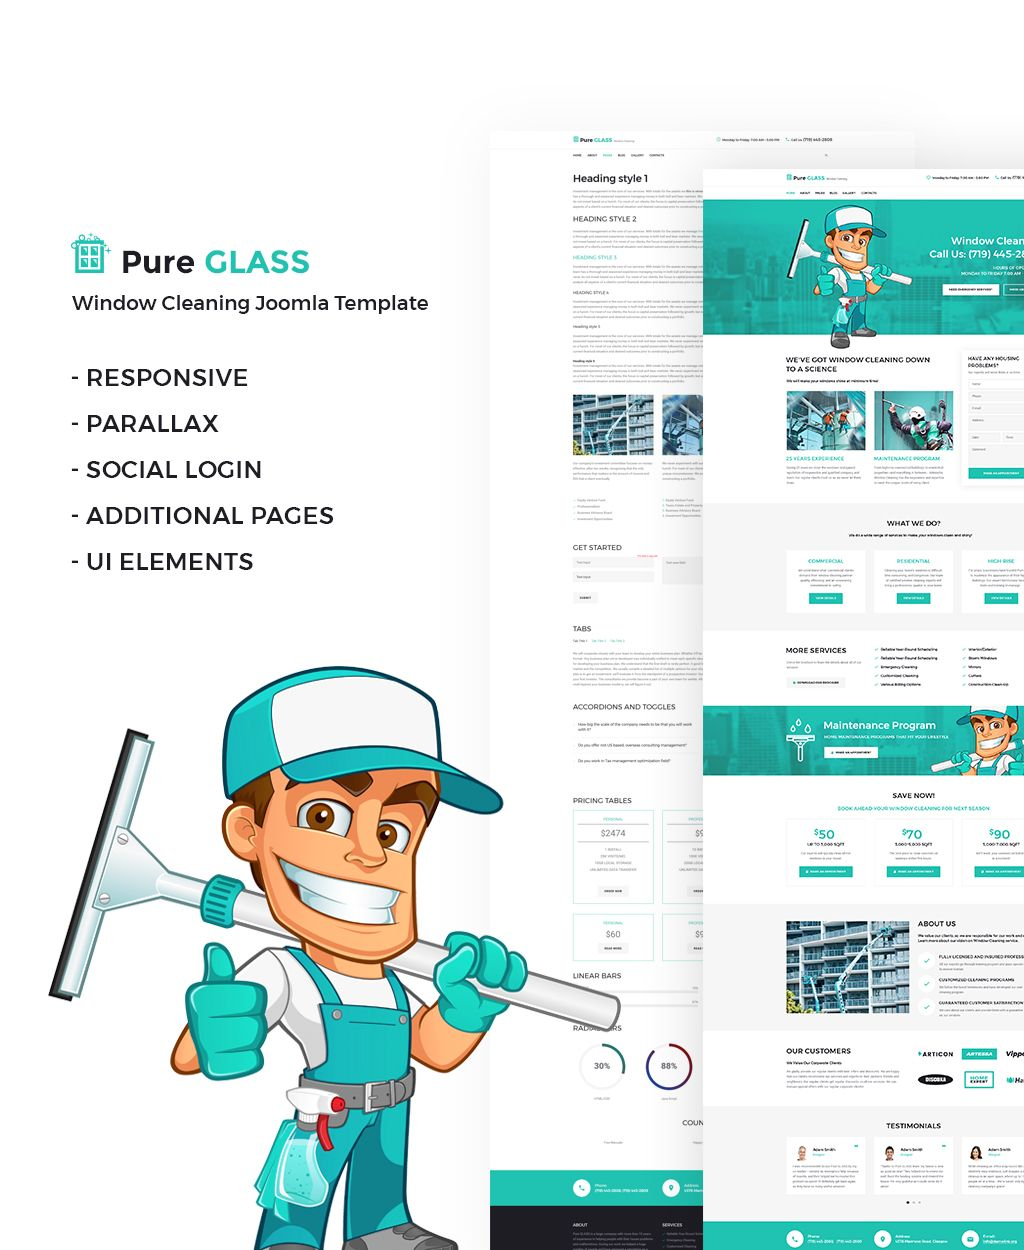 Window Cleaning Services Joomla Template